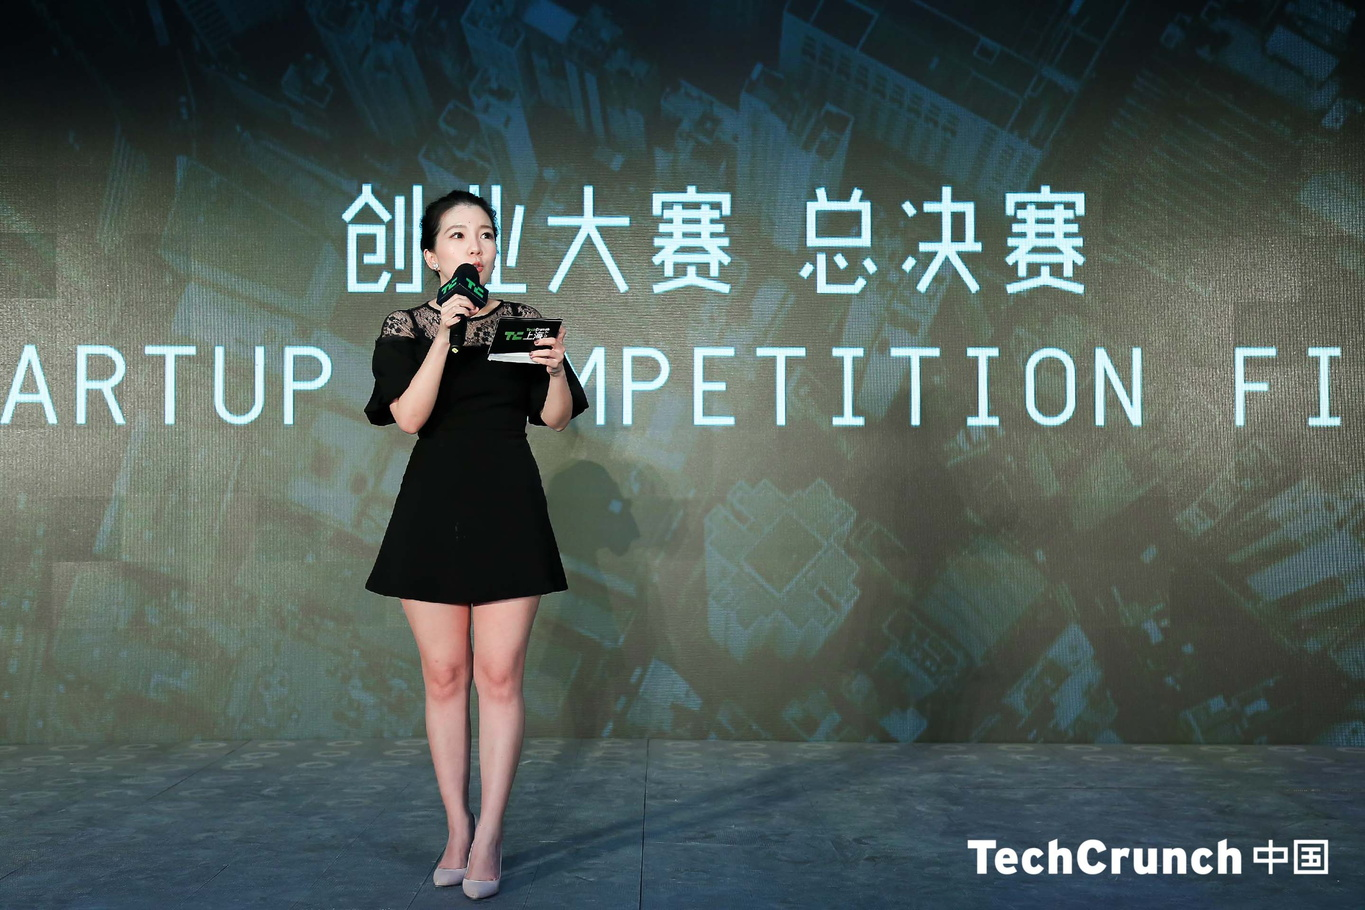 Host of the Startup Competition Finals (Image credit: TechCrunch Shanghai)